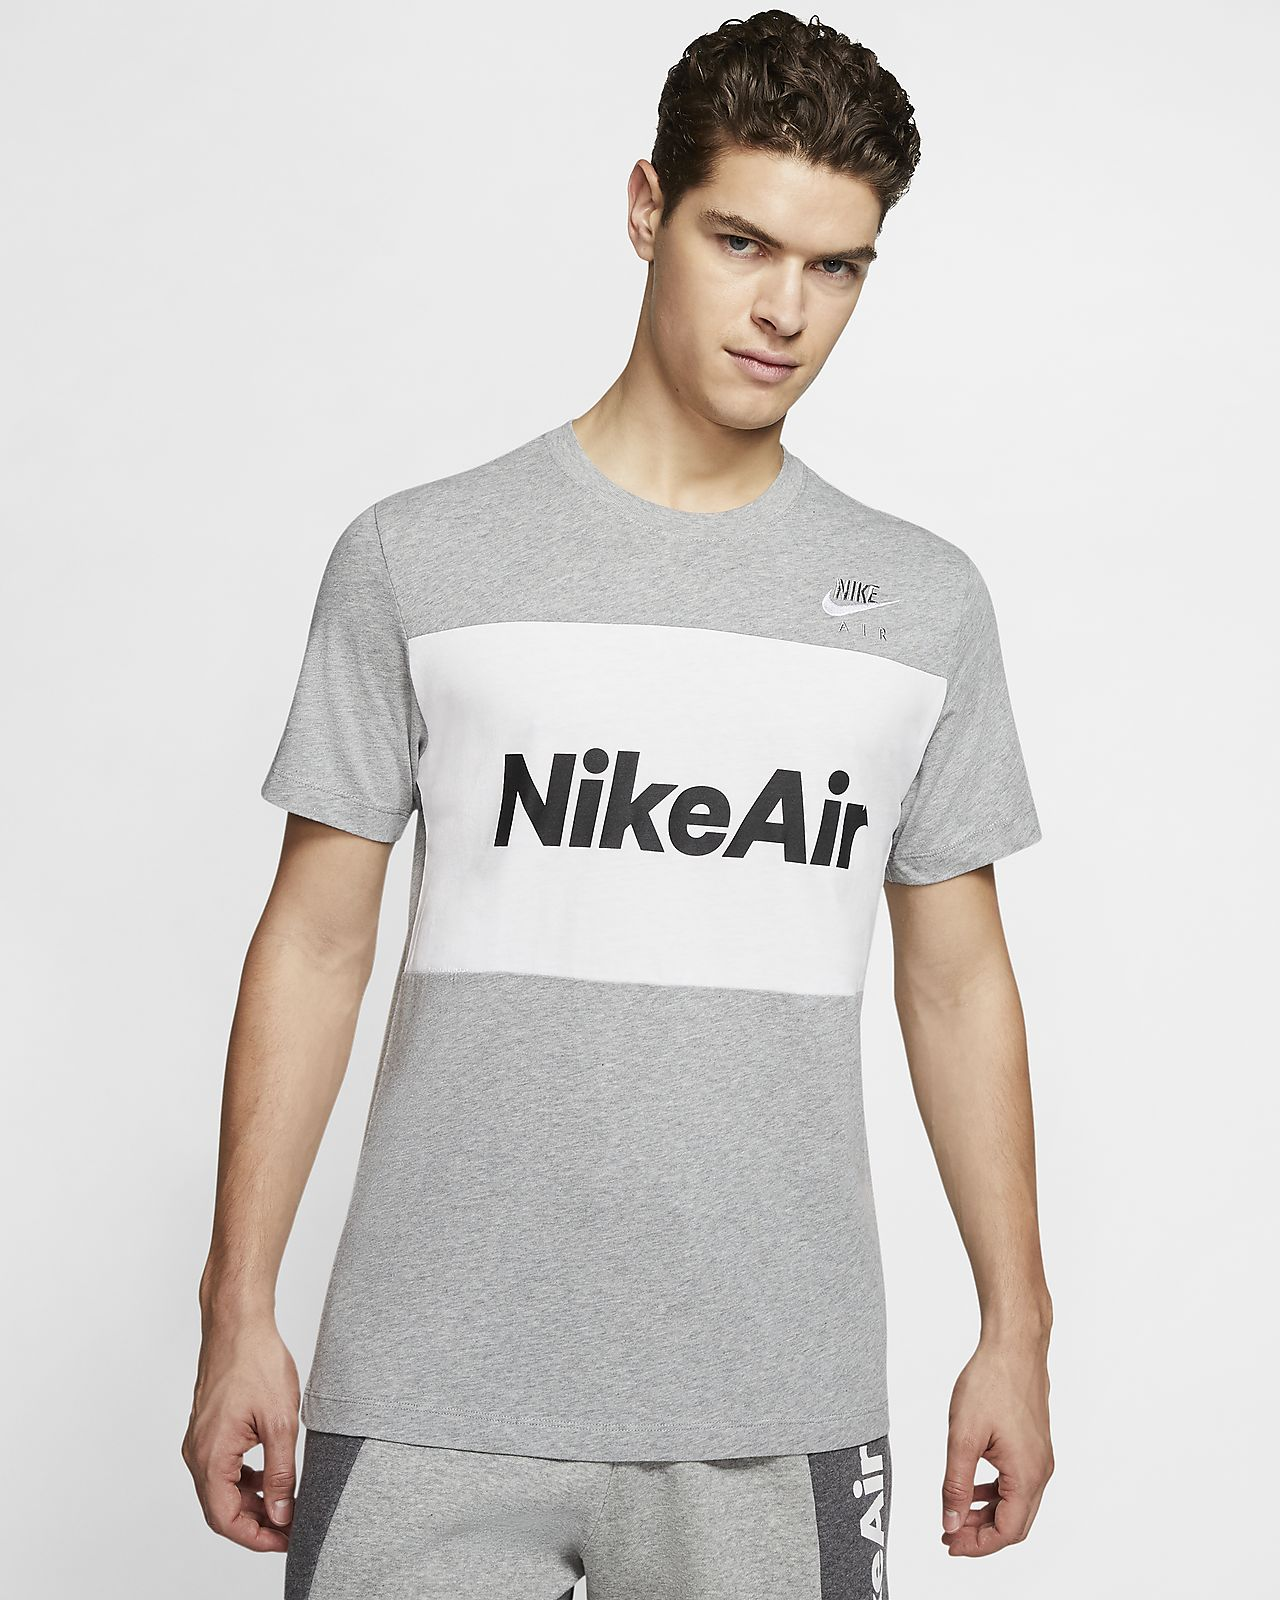 Nike Air Men's T Shirt